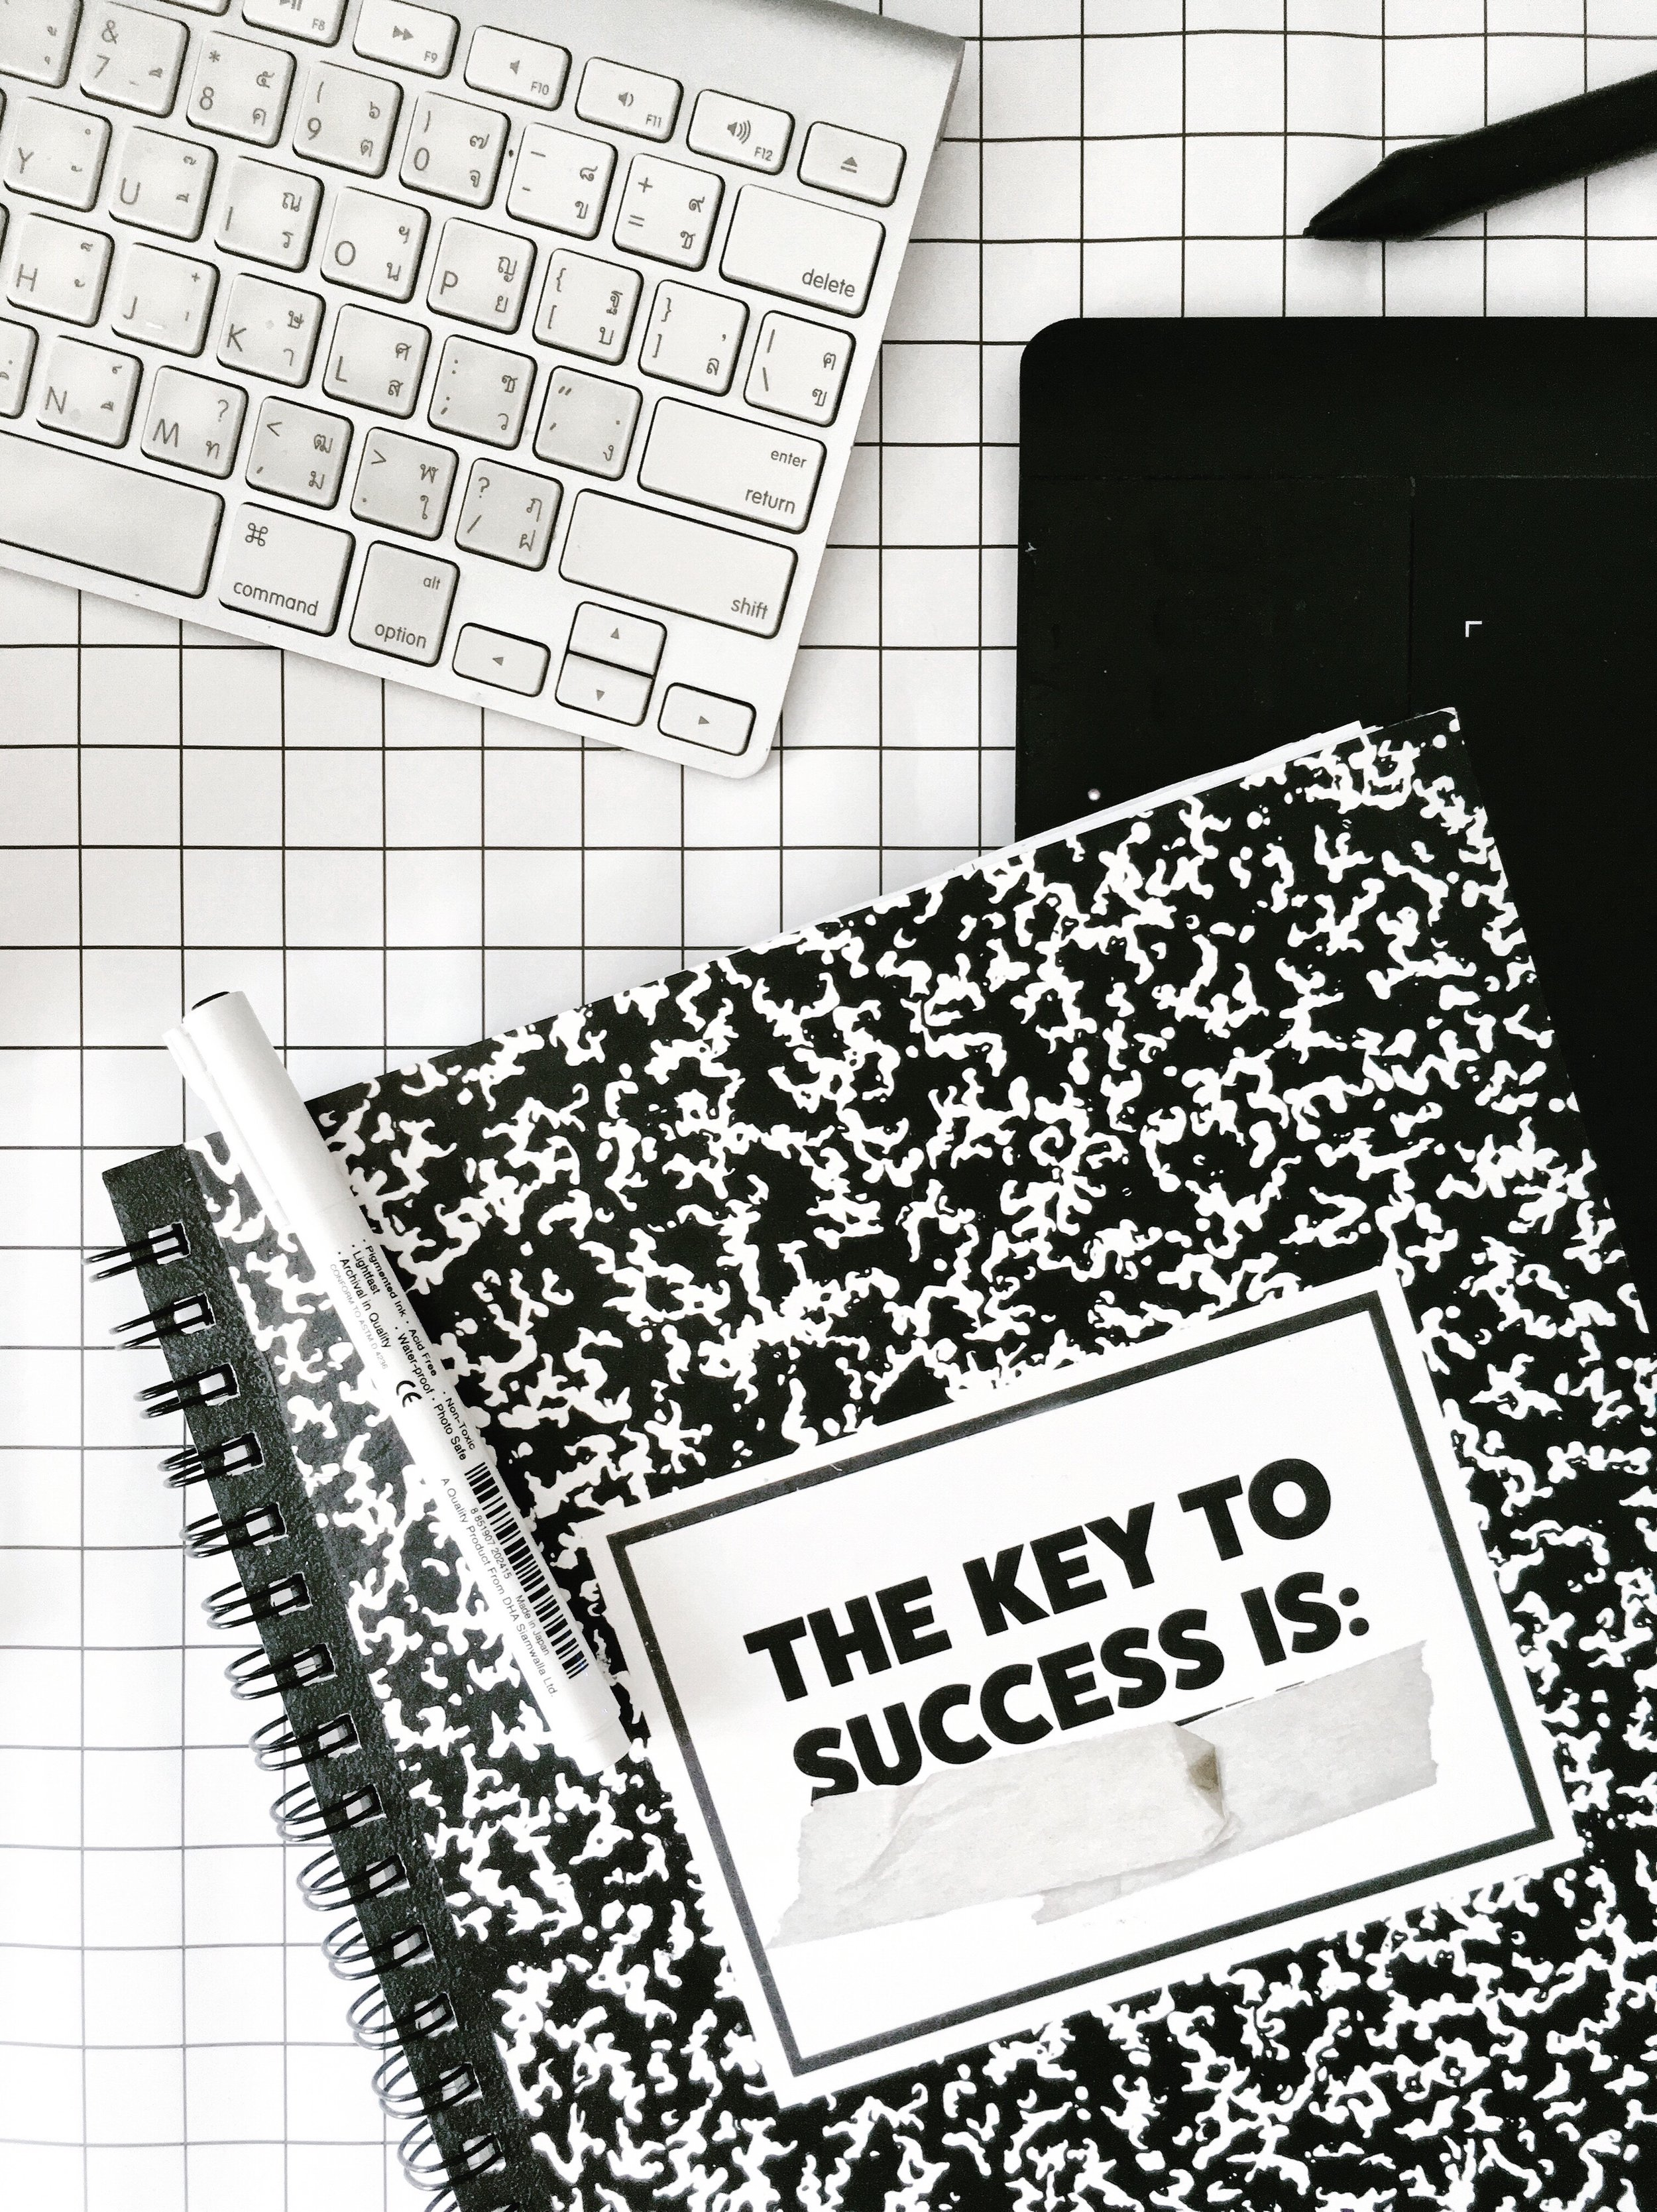 planner-the-key-to-success-is_t20_koWNxK.jpg